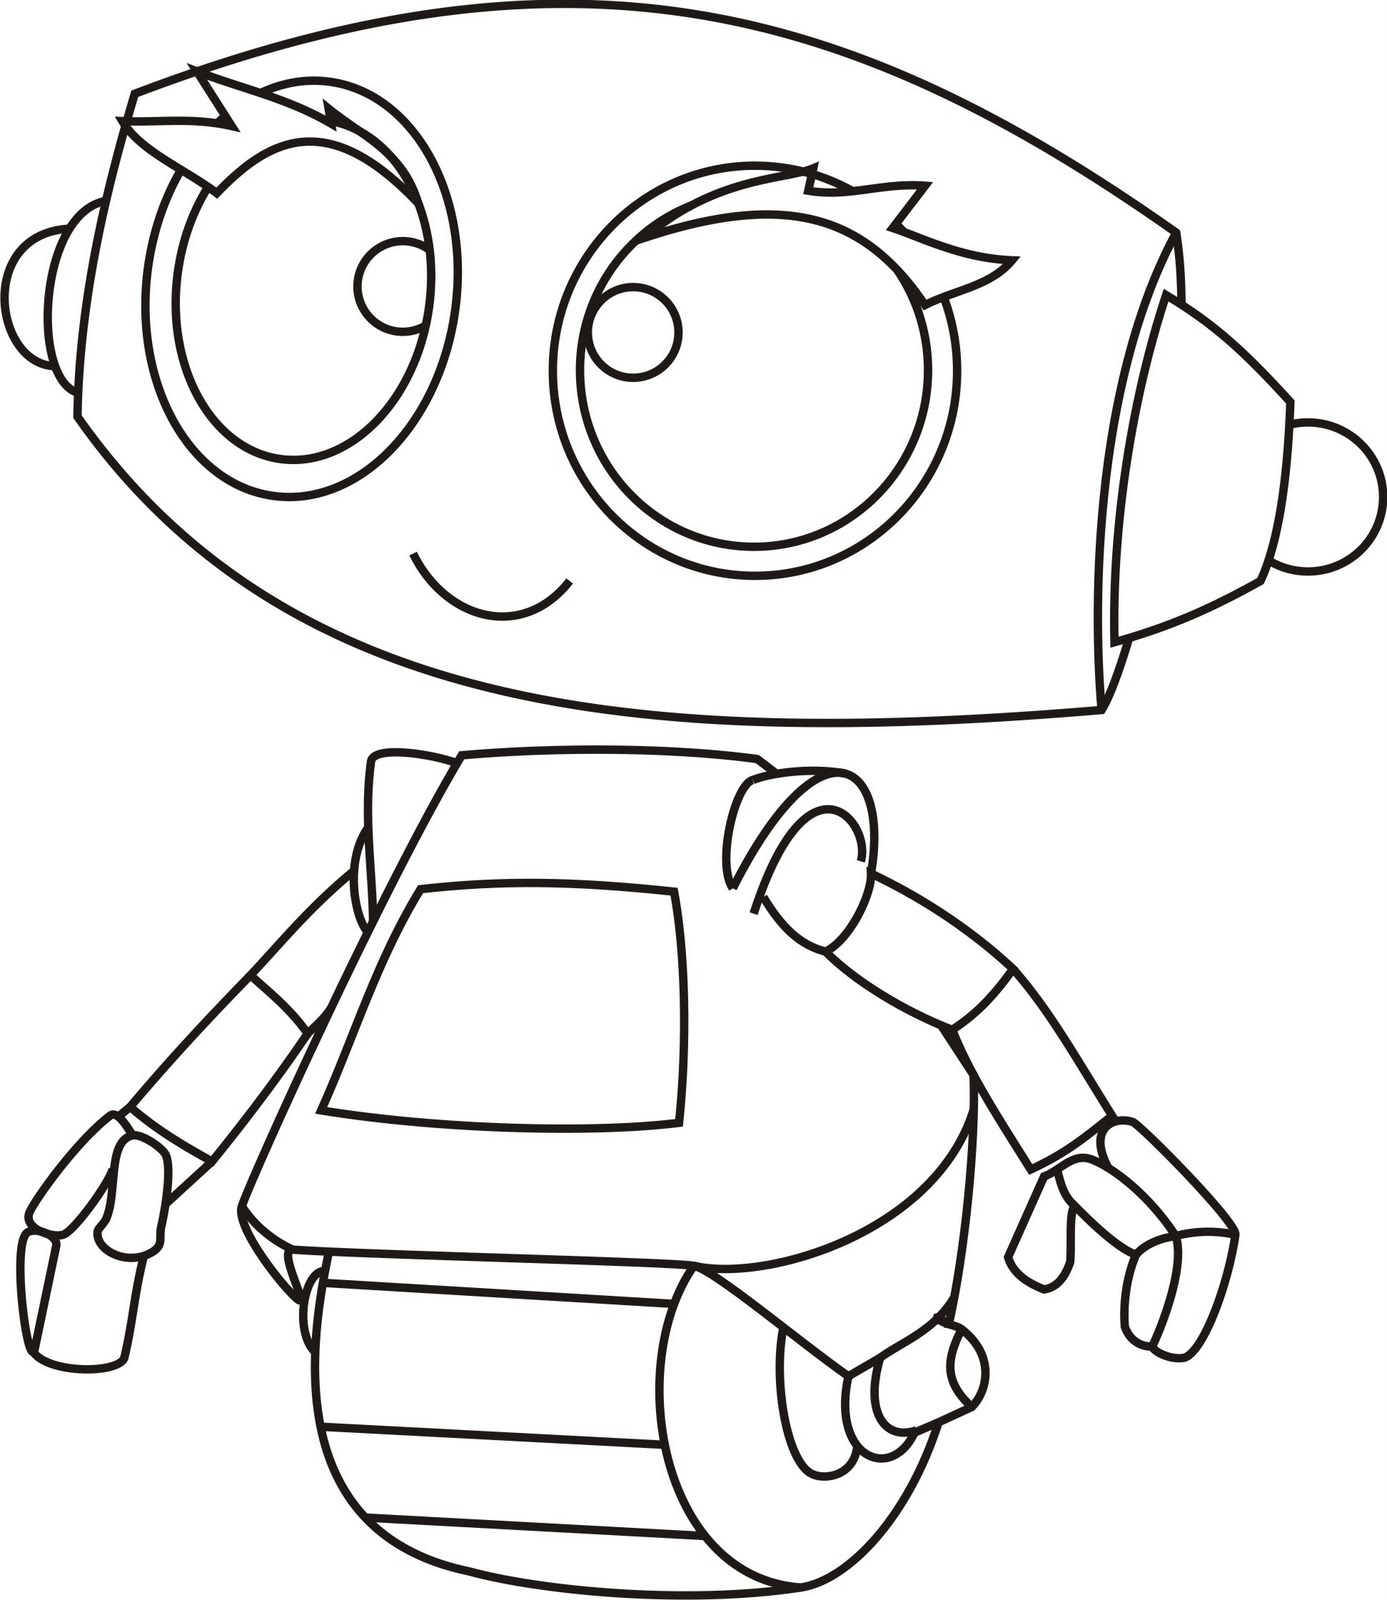 Zues Printable Robot Coloring Pages Coloring Pages